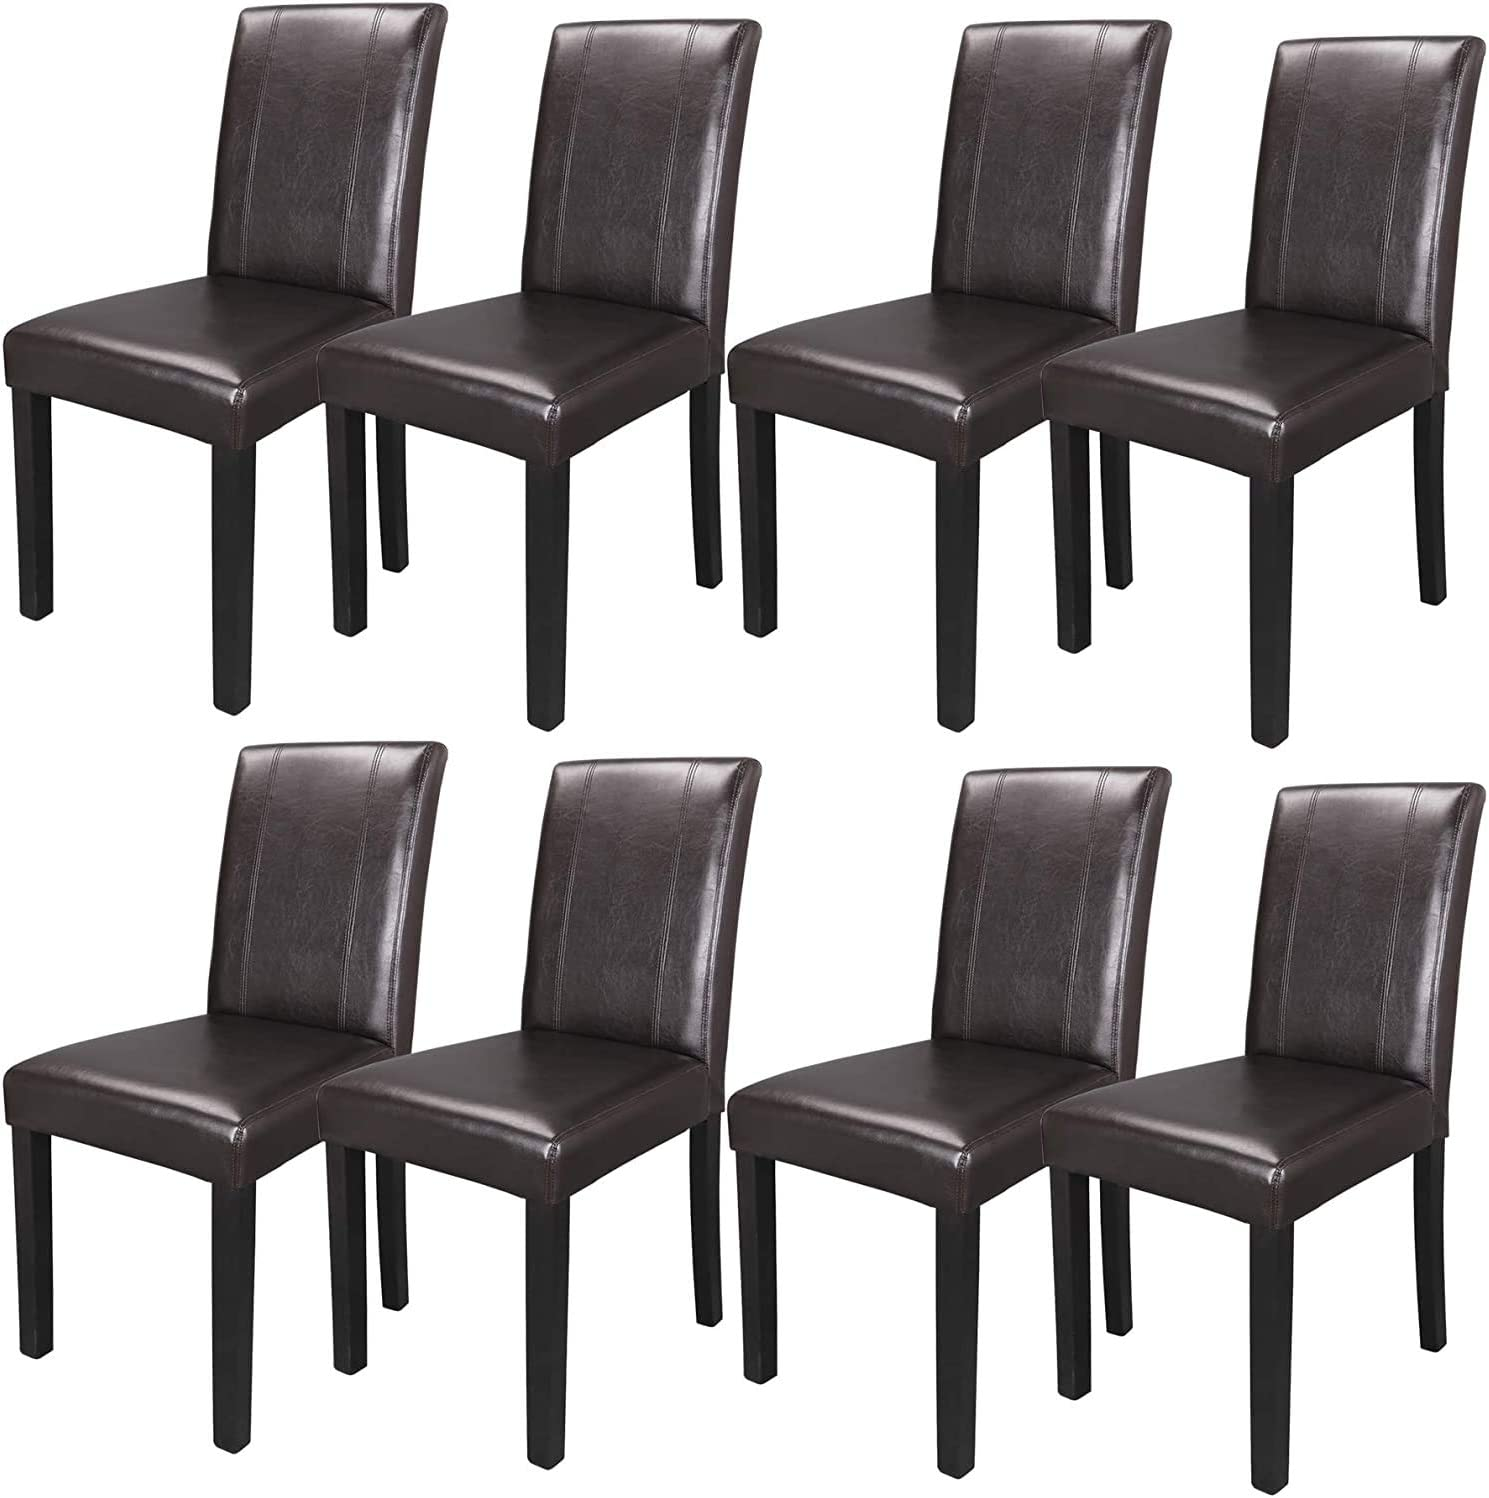 Amazon Com Zeny Set Of 8 Leather Dining Room Chairs With Wood Legs Chair Urban Style Chairs